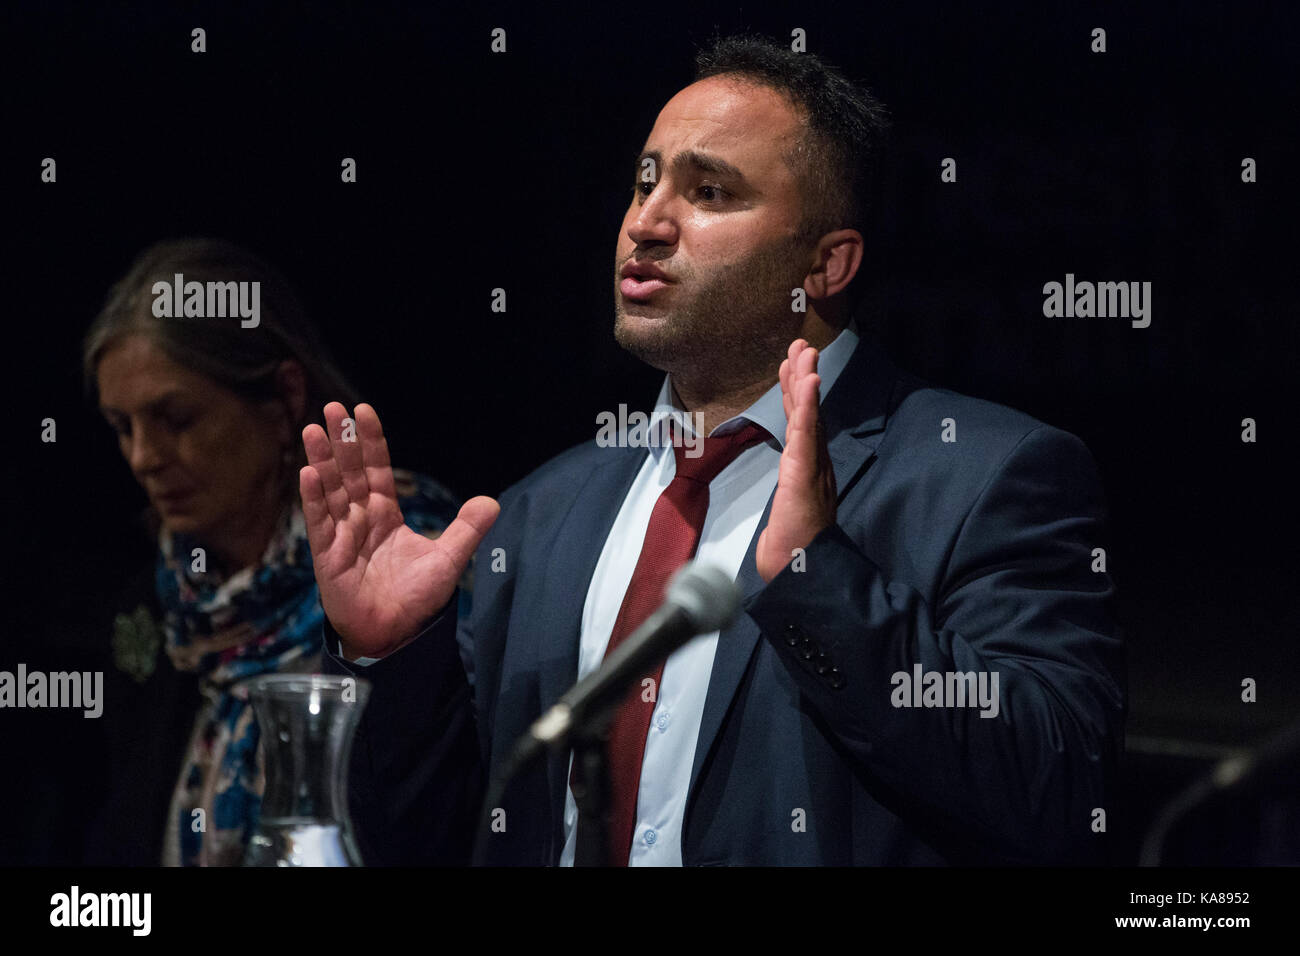 London, UK. 25th Sep, 2017. Issa Amro, a prominent Palestinian human rights defender and co-founder of the Hebron Stock Photo